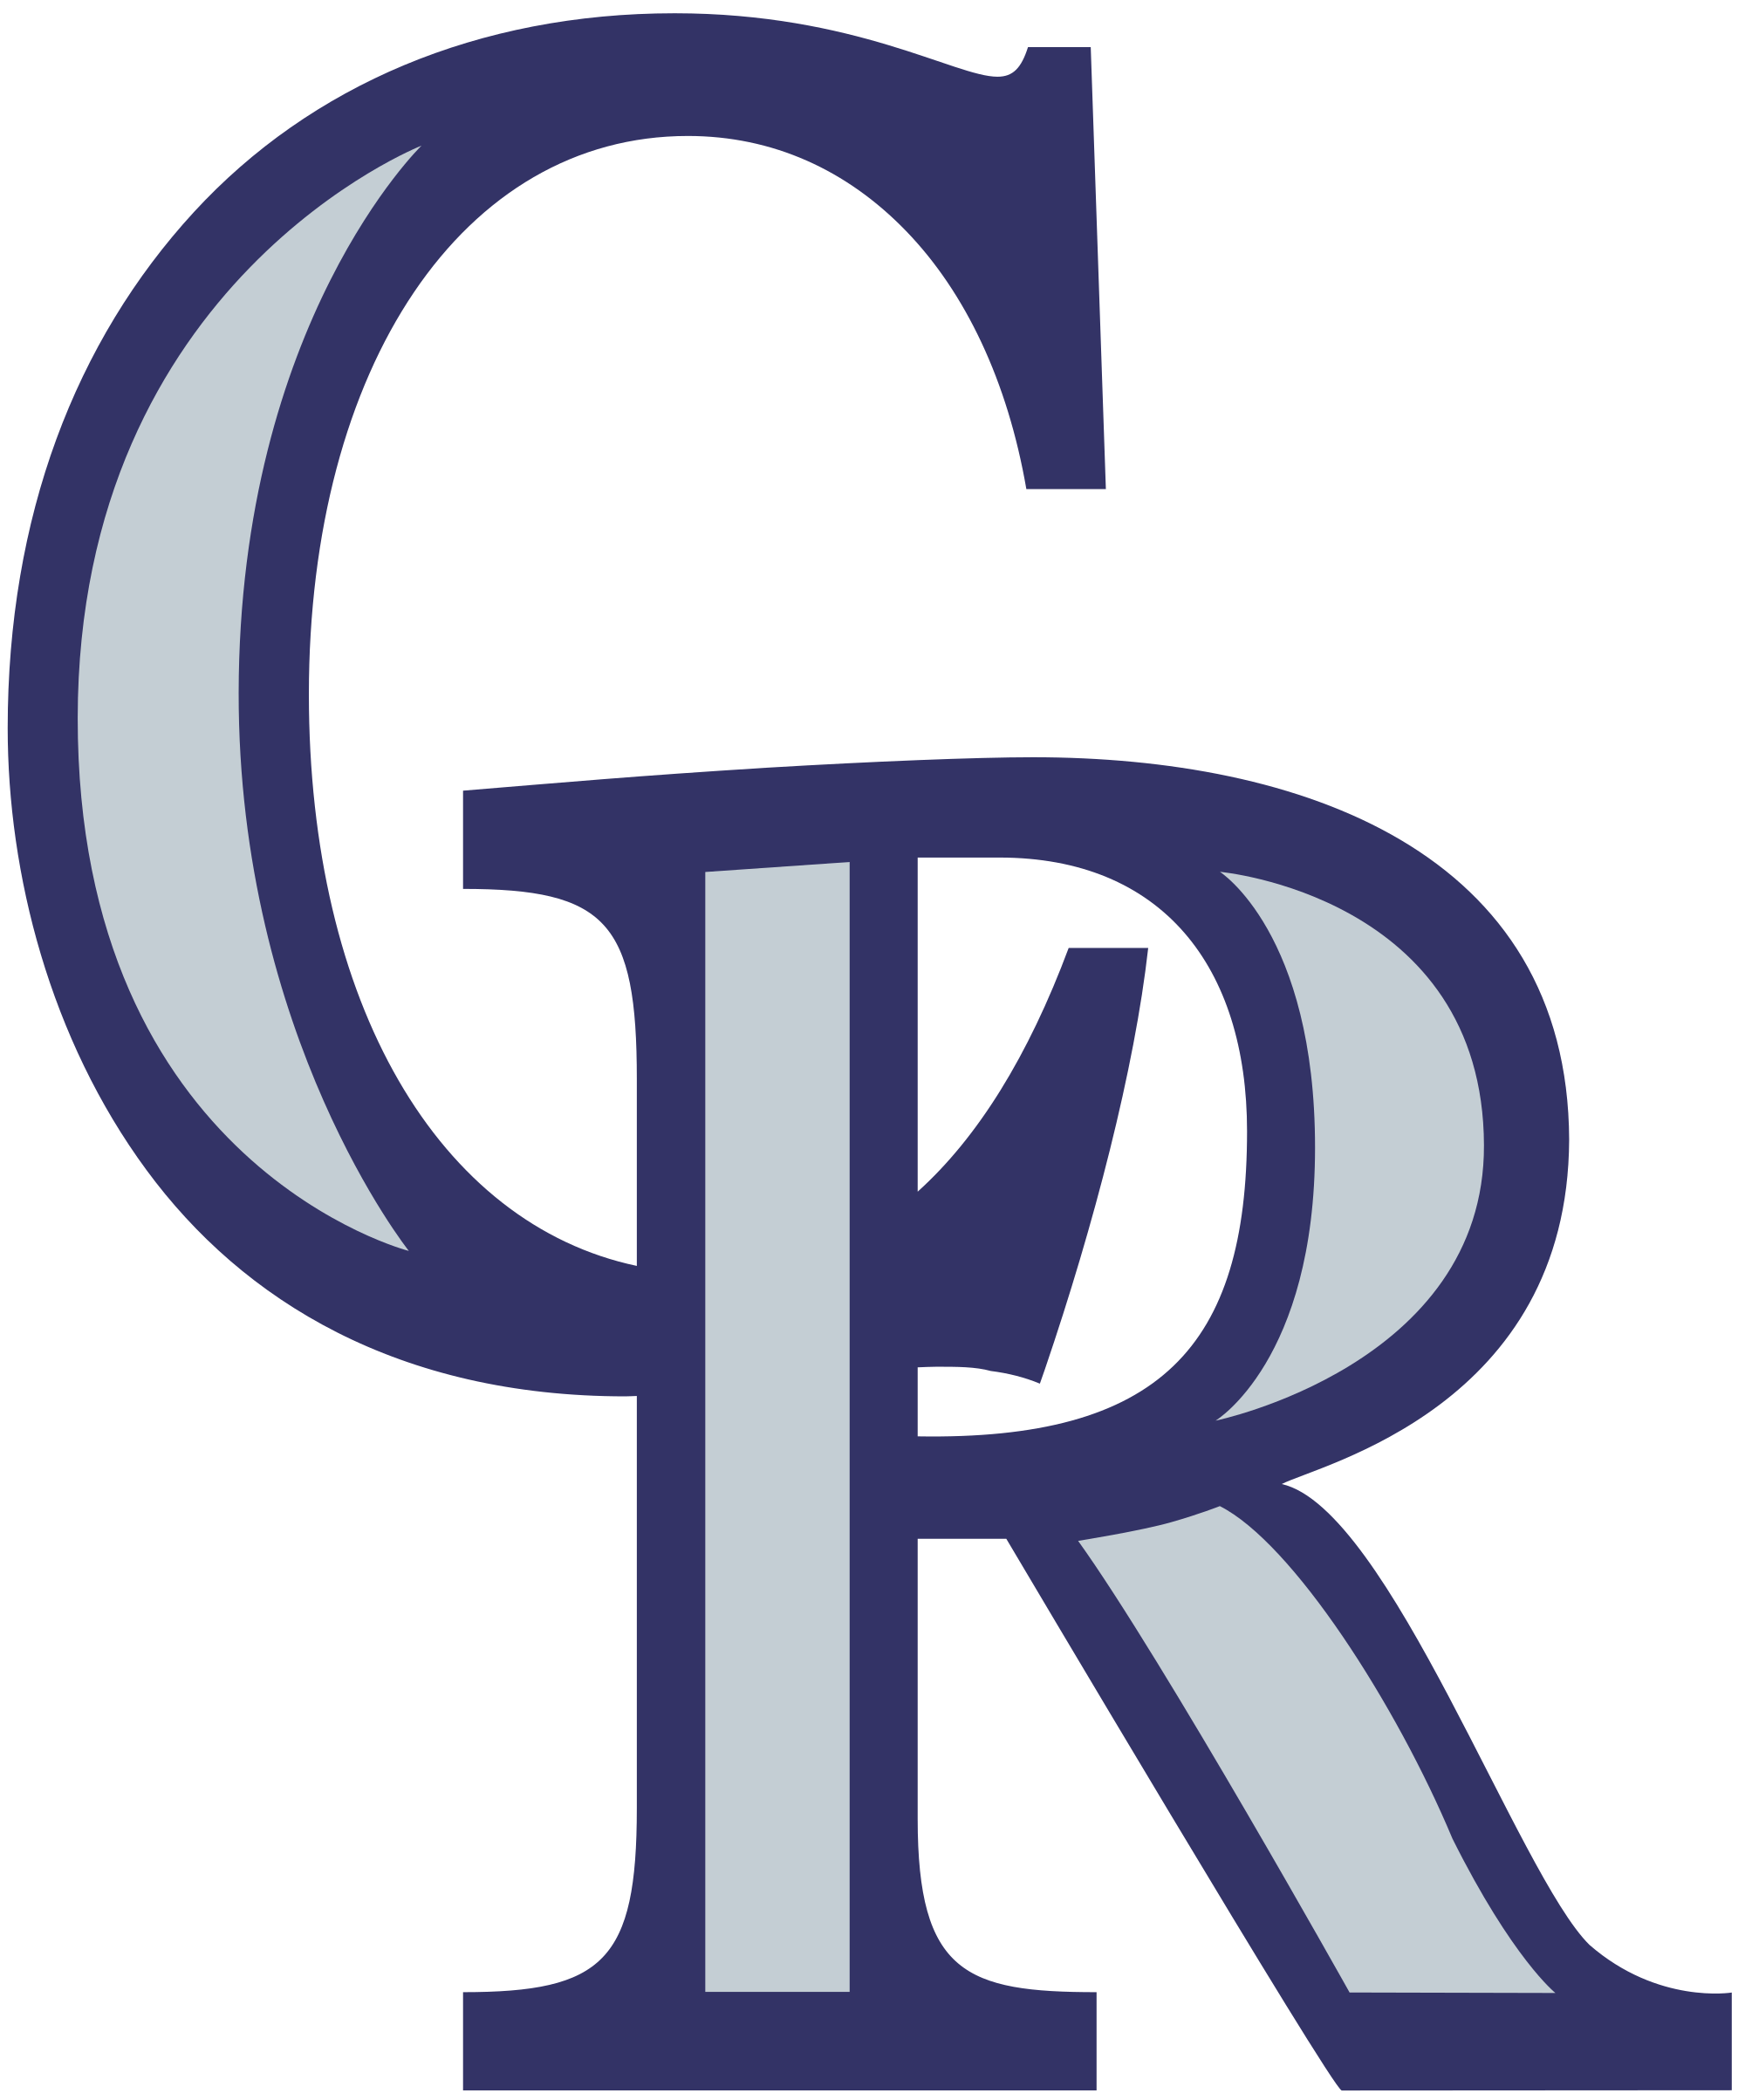 Rockies baseball clipart picture royalty free stock File:Colorado Rockies logo.svg - Wikimedia Commons picture royalty free stock